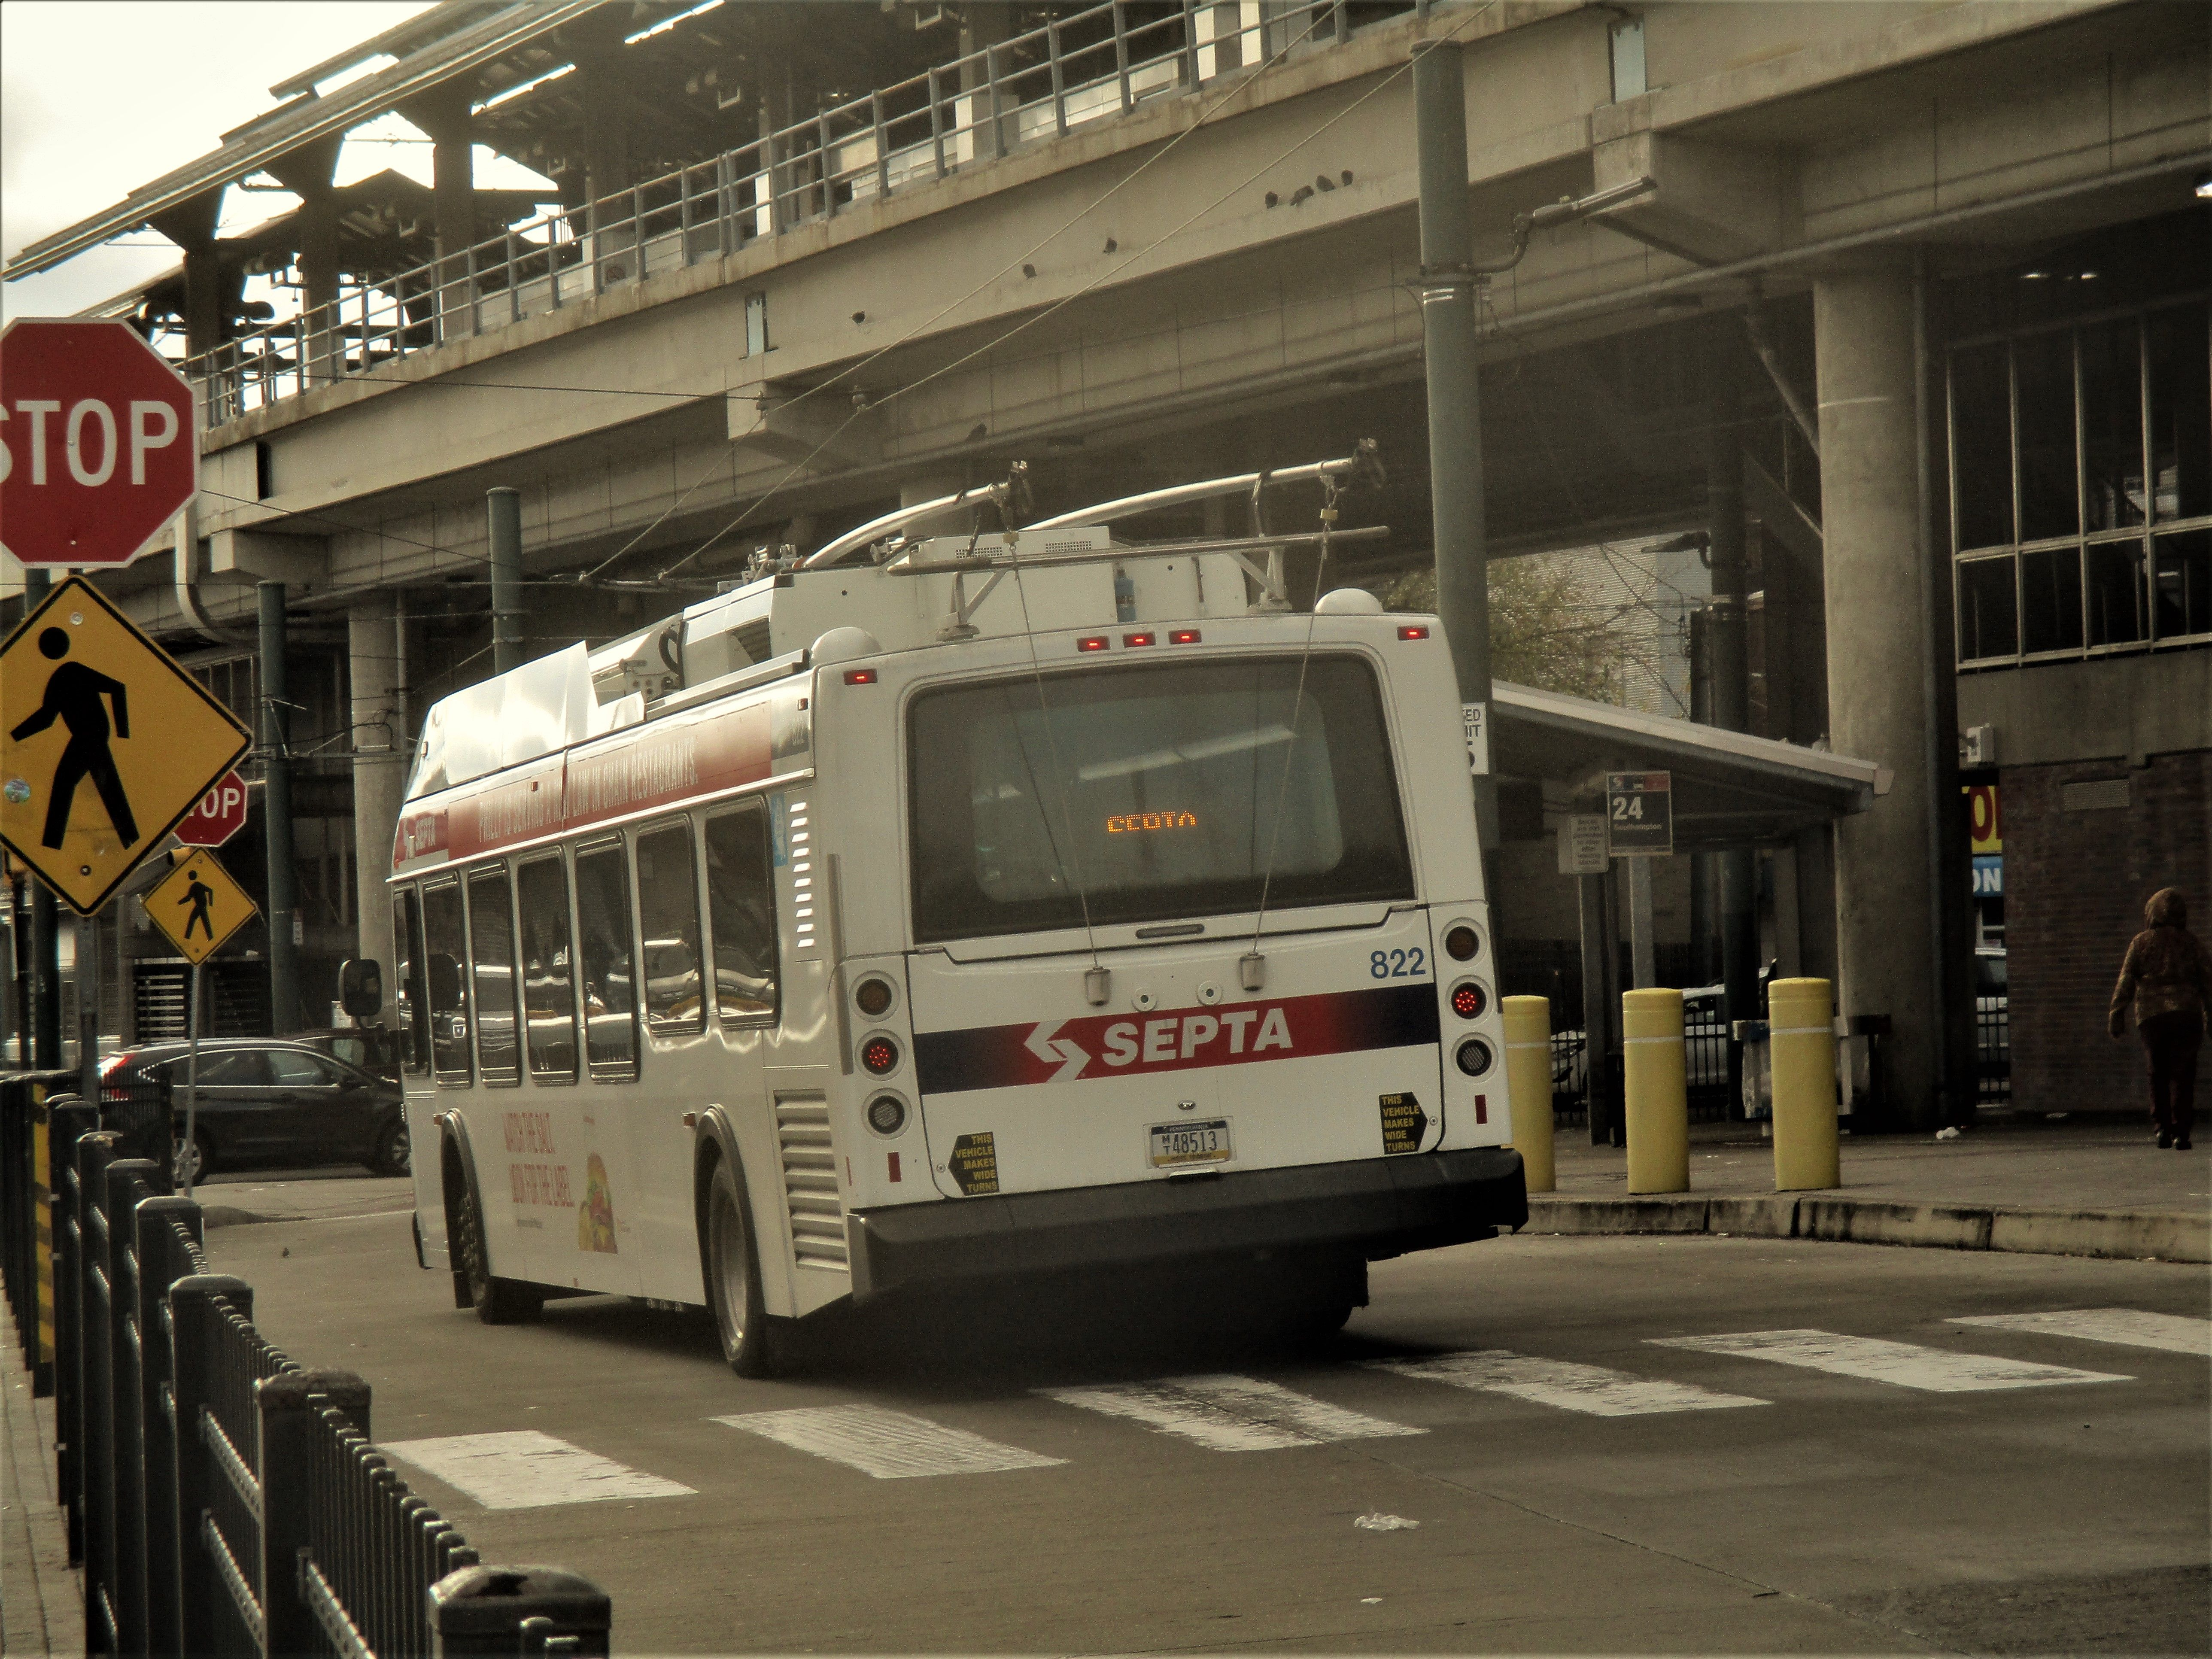 5048314dc23405141ce81f3c34e2689c - What Time Does The Gardena 2 Bus Stop Running